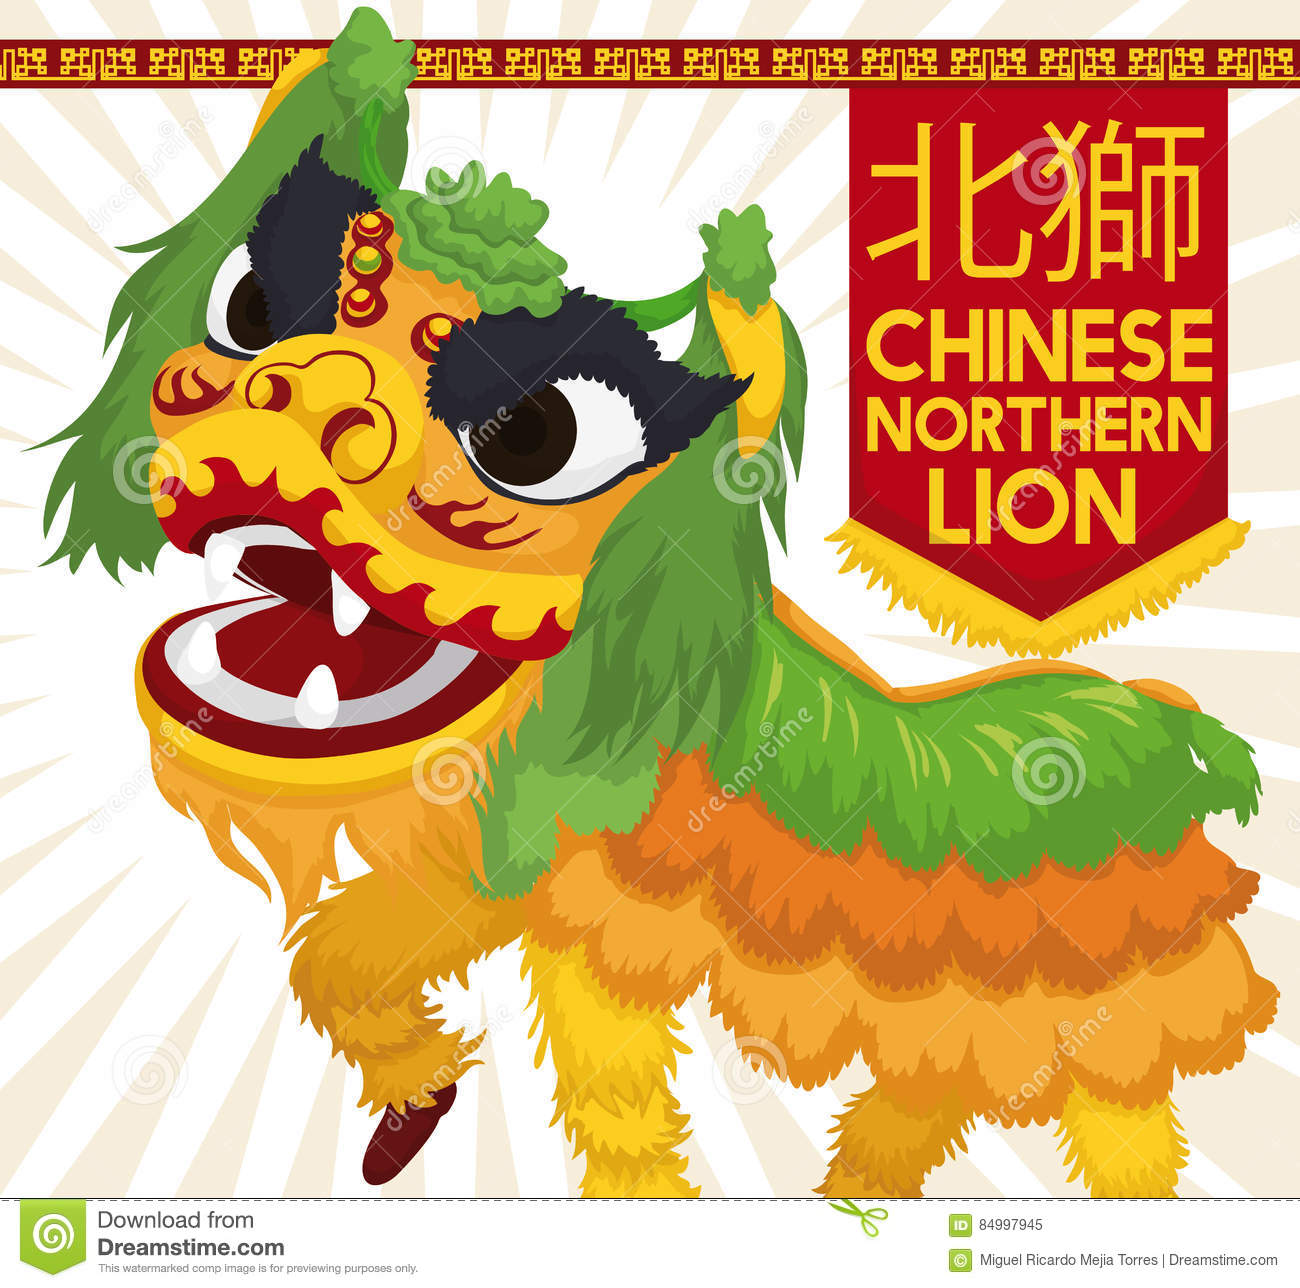 bcbf7e76f Poster with traditional performance of the Northern lion dance written in  traditional Chinese with green color costume, representing female feline  for ...